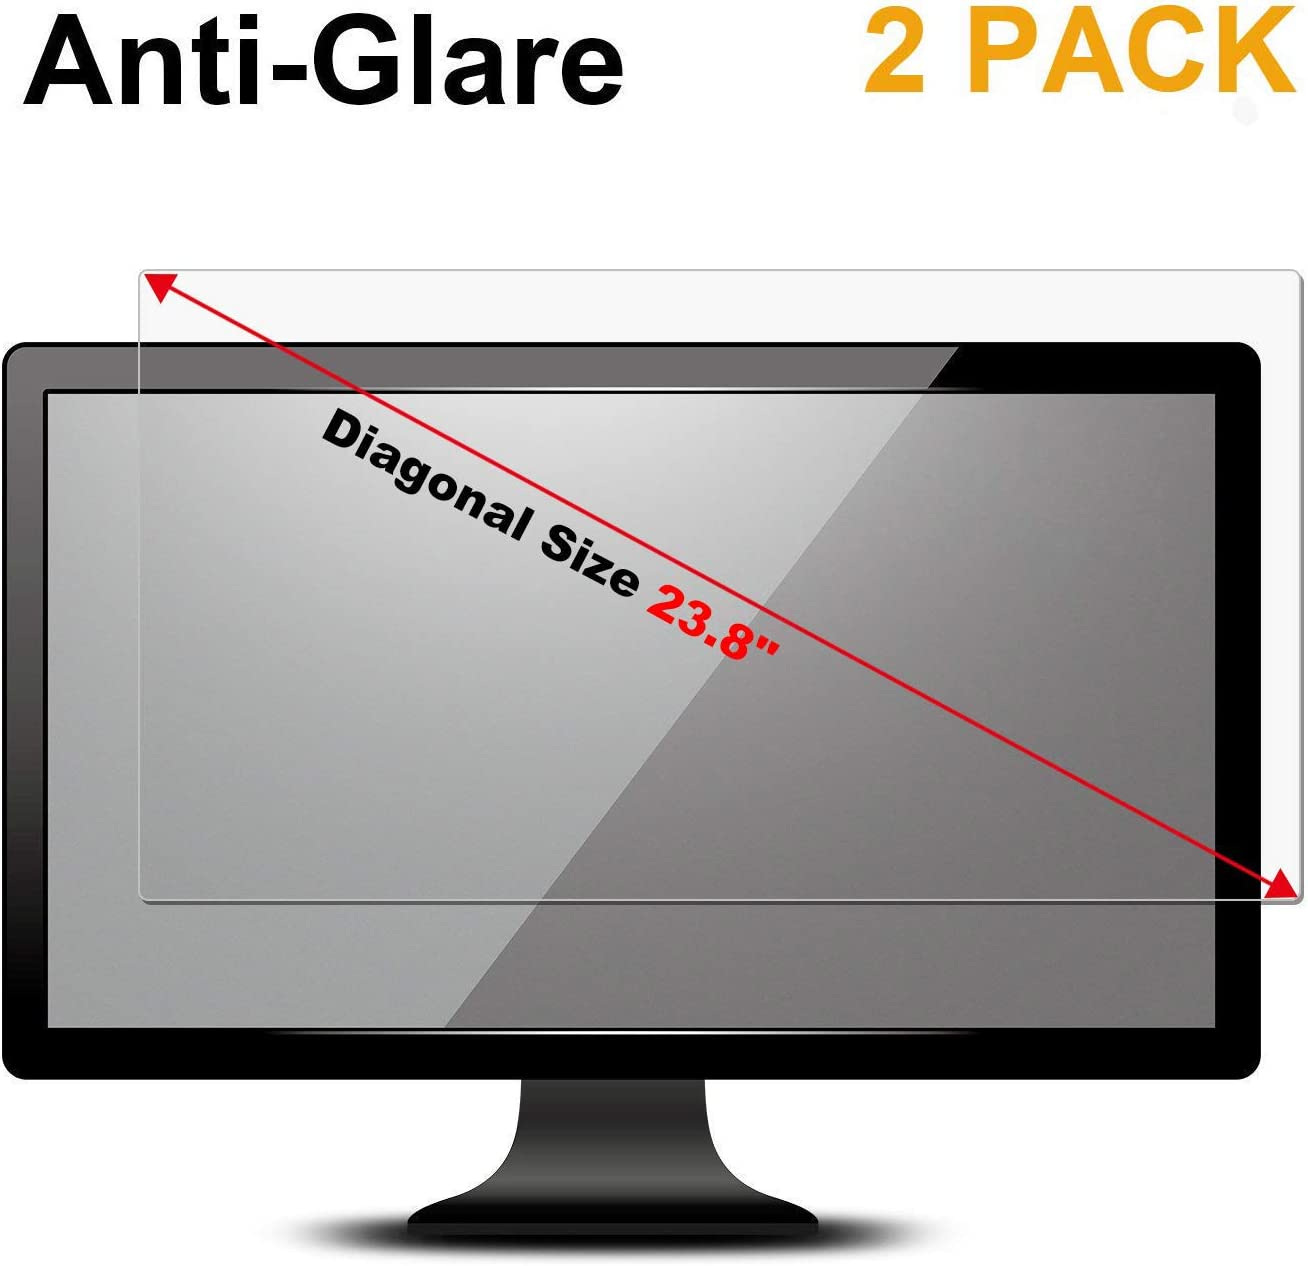 "FORITO 2-Pack 23.8"" Anti Glare(Matte) Screen Protector Compatible with 23.8"" Dell/ASUS/Acer/ViewSonic/Samsung/Aoc/HP Widescreen Desktop Monitor with 16:9 Aspect Ratio Screen (Size: 20.7"" x 11.7"" WxH)"